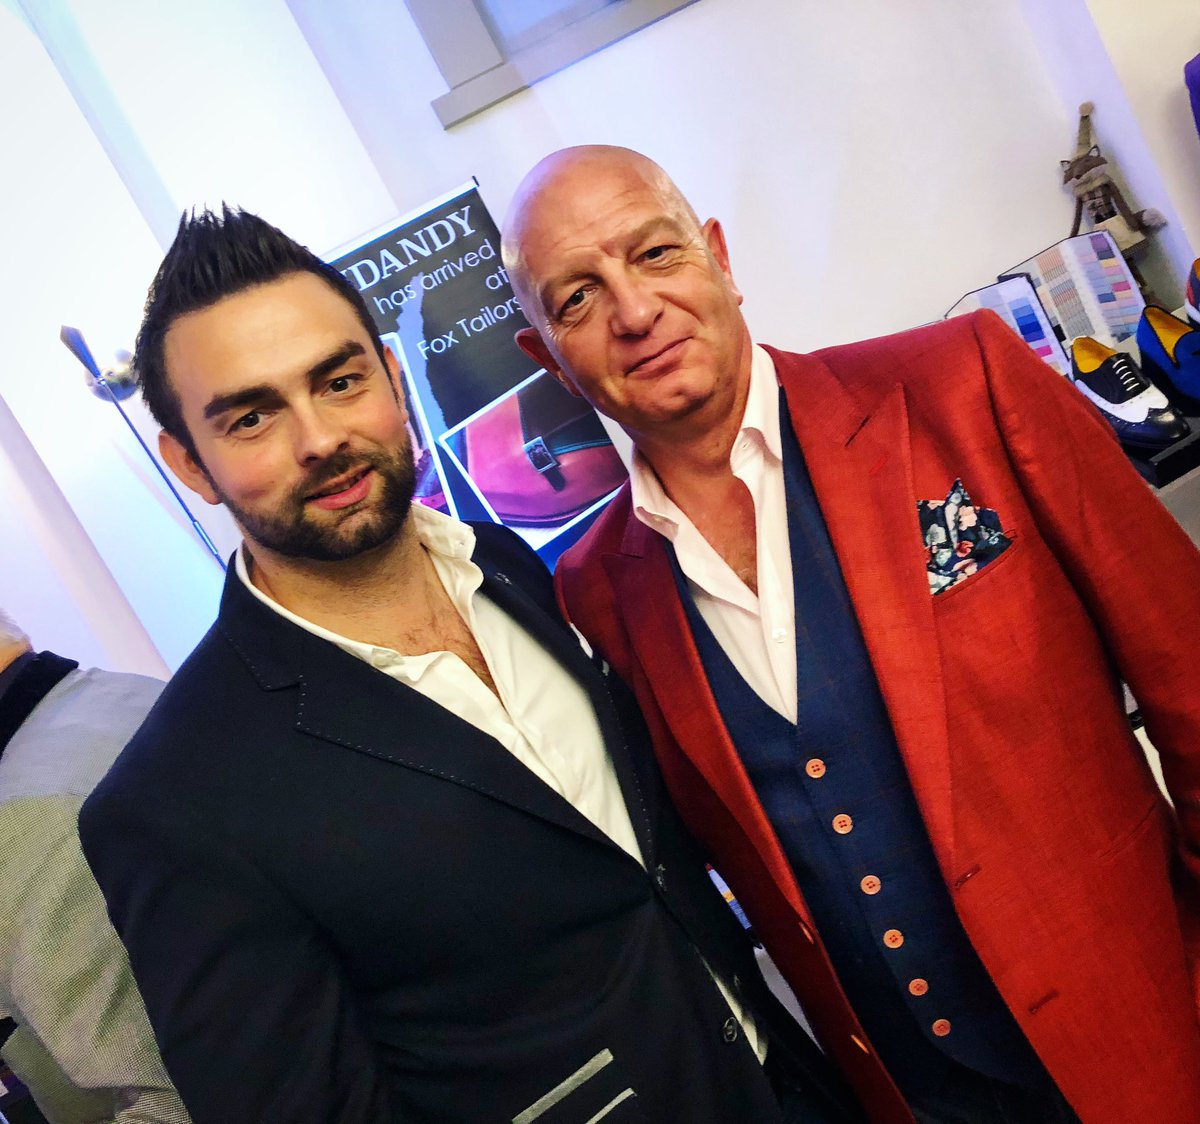 Father & son at @FoxTailoring men's style event. #bespokejacket #bespokewaistcoat pic.twitter.com/kaHv5de2tR